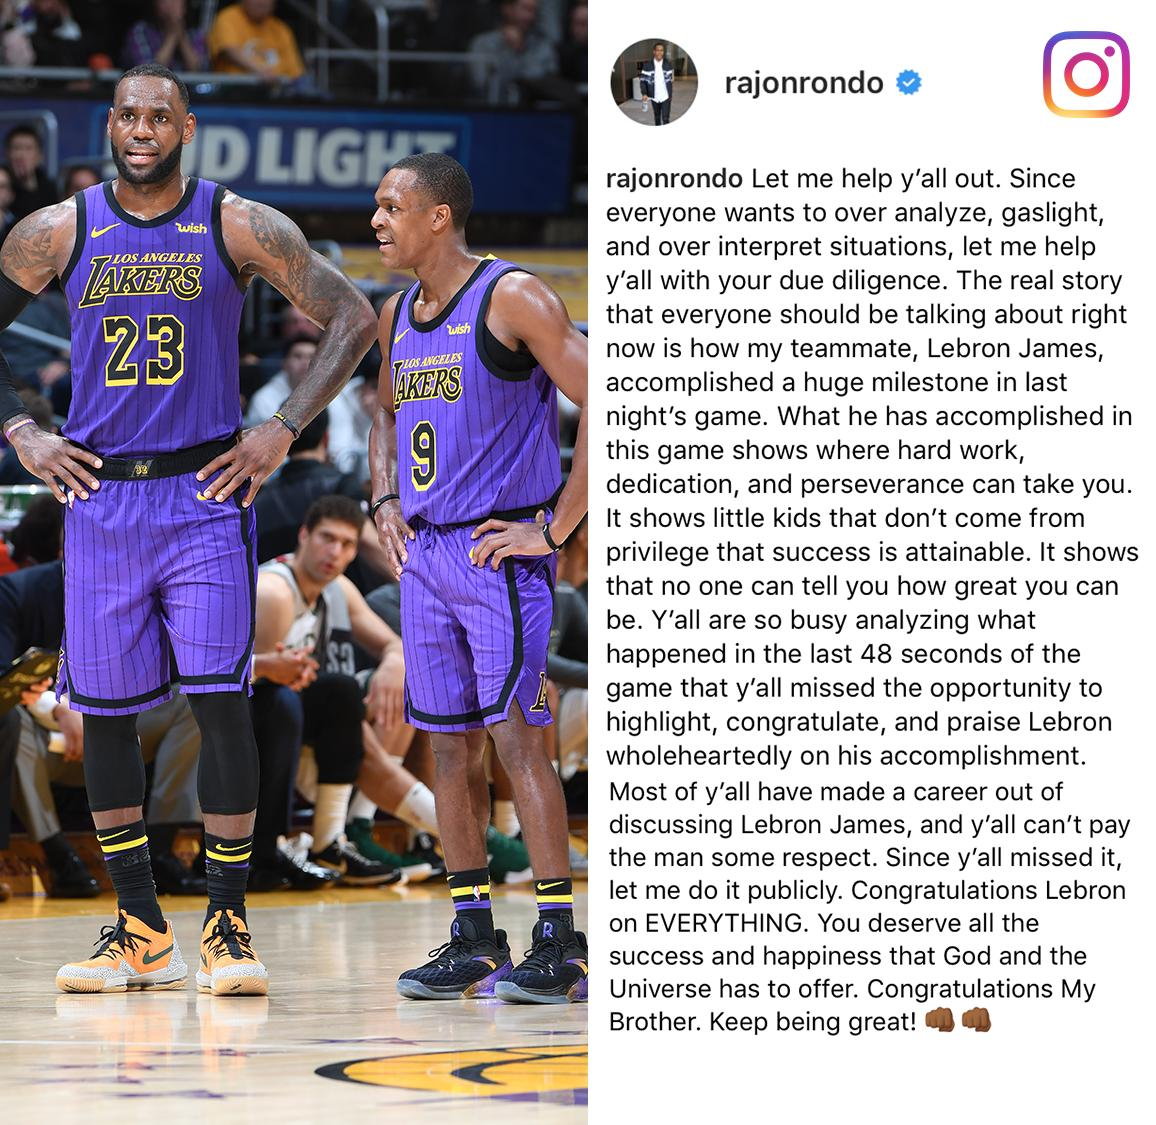 Rajon Rondo took to Instagram to say the real story last night was LeBron, and not about him sitting courtside.